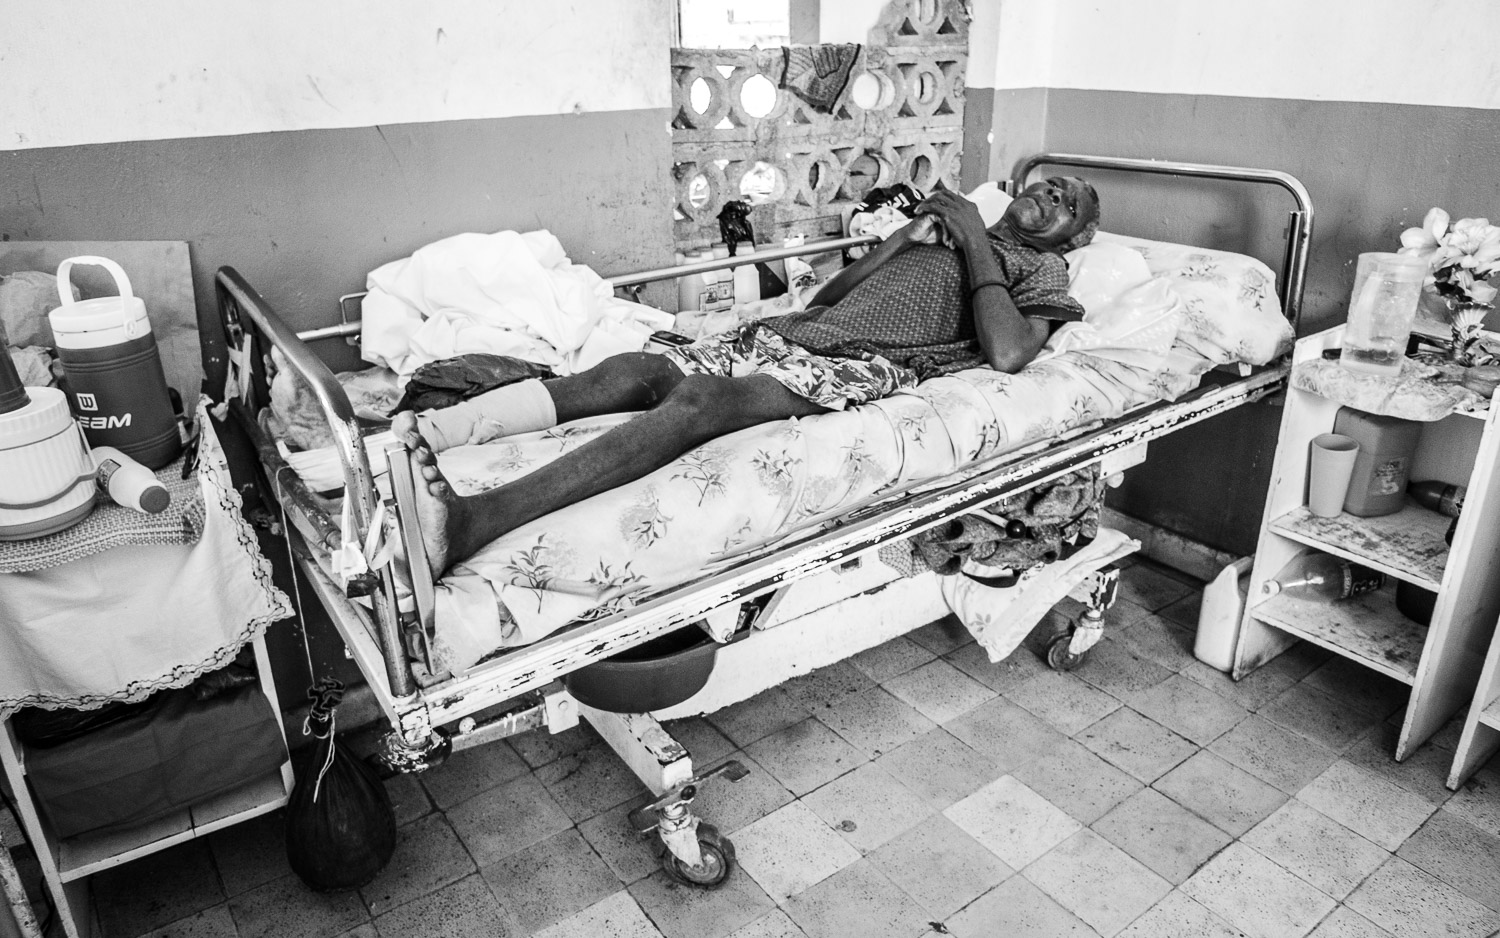 Patient with femur fracture waiting for surgery.